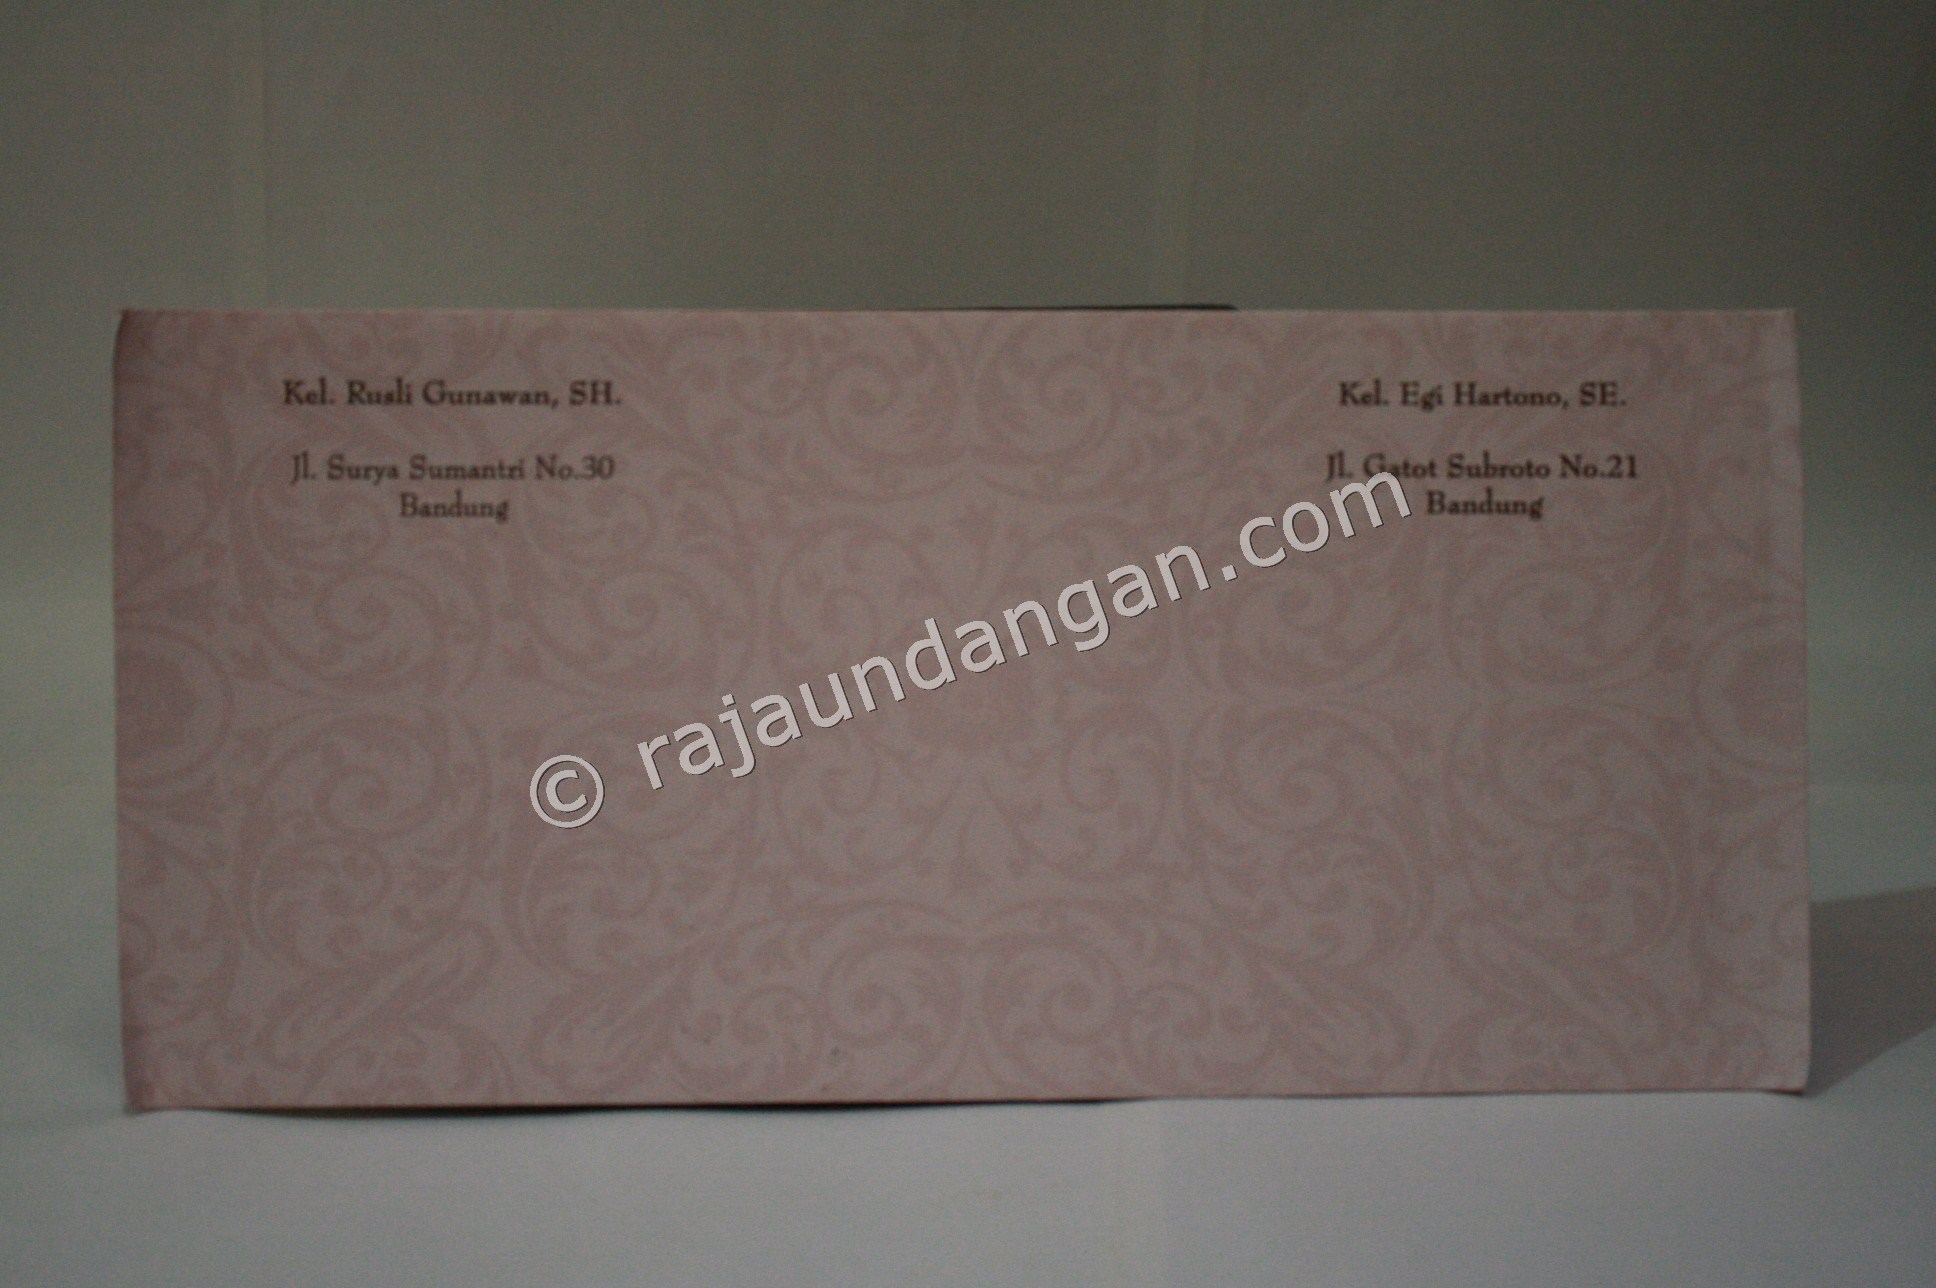 Undangan Pernikahan Softcover Dewi dan Roni 2 - Percetakan Wedding Invitations Unik dan Simple di Simomulyo